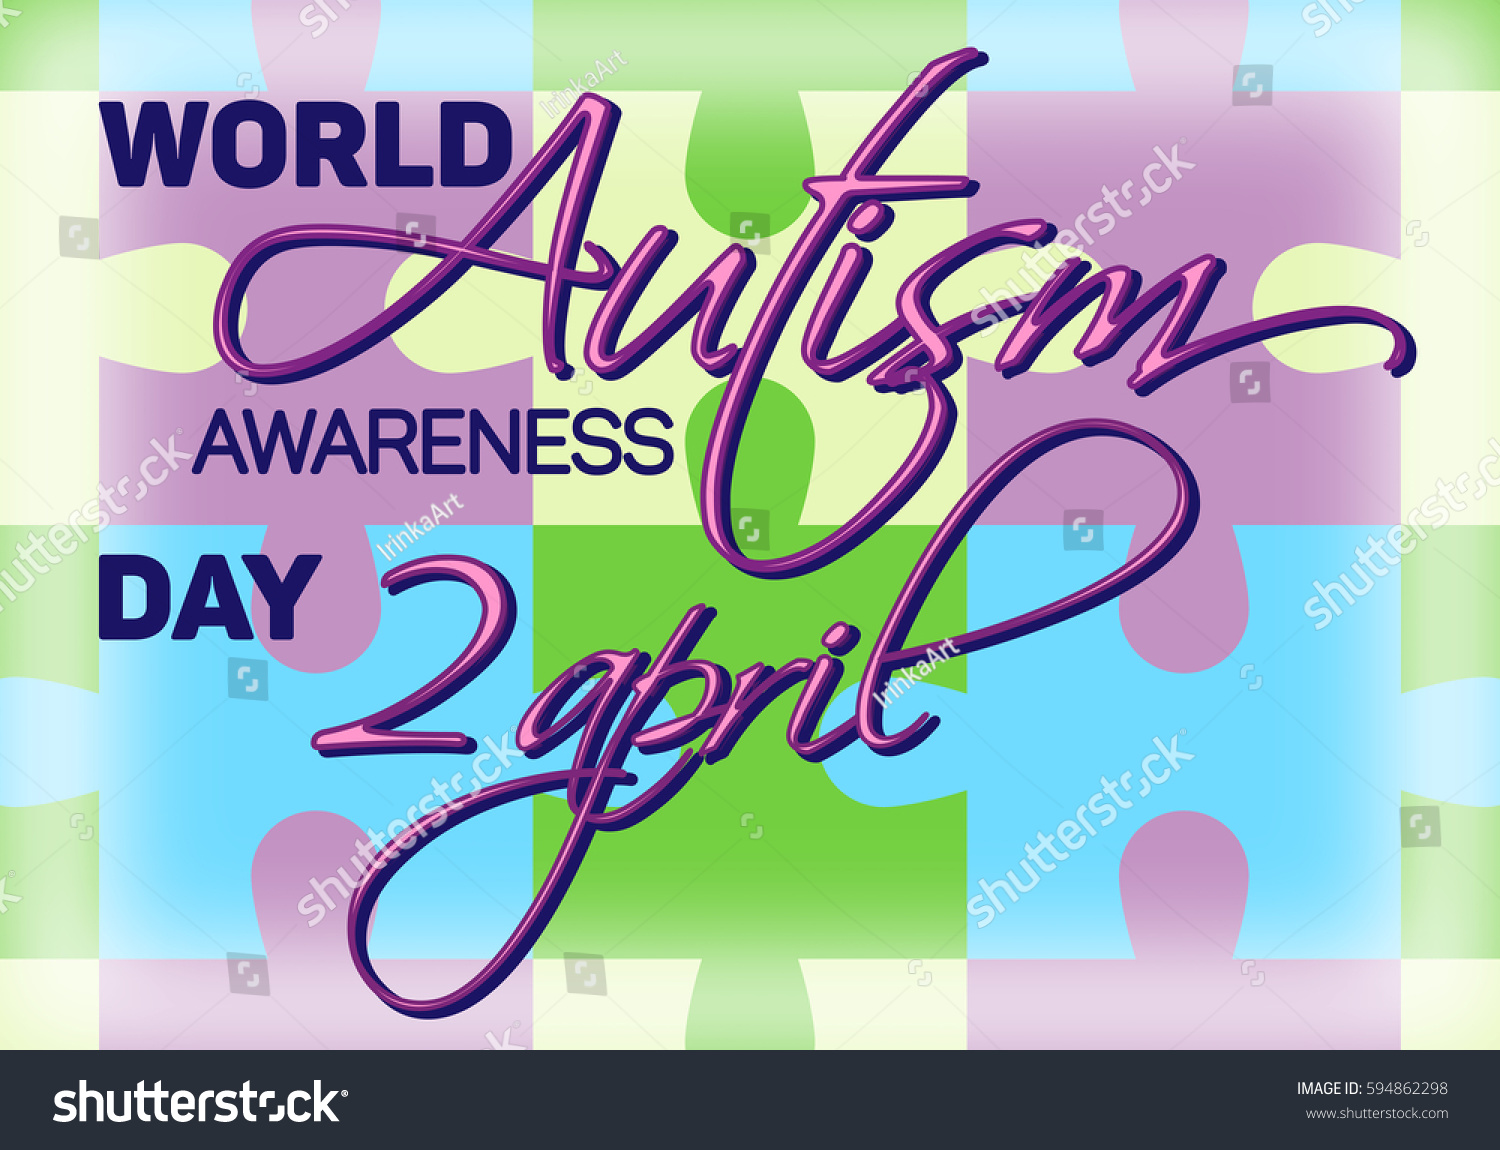 World autism awareness day colorful puzzles stock vector 594862298 world autism awareness day colorful puzzles vector background symbol of autism biocorpaavc